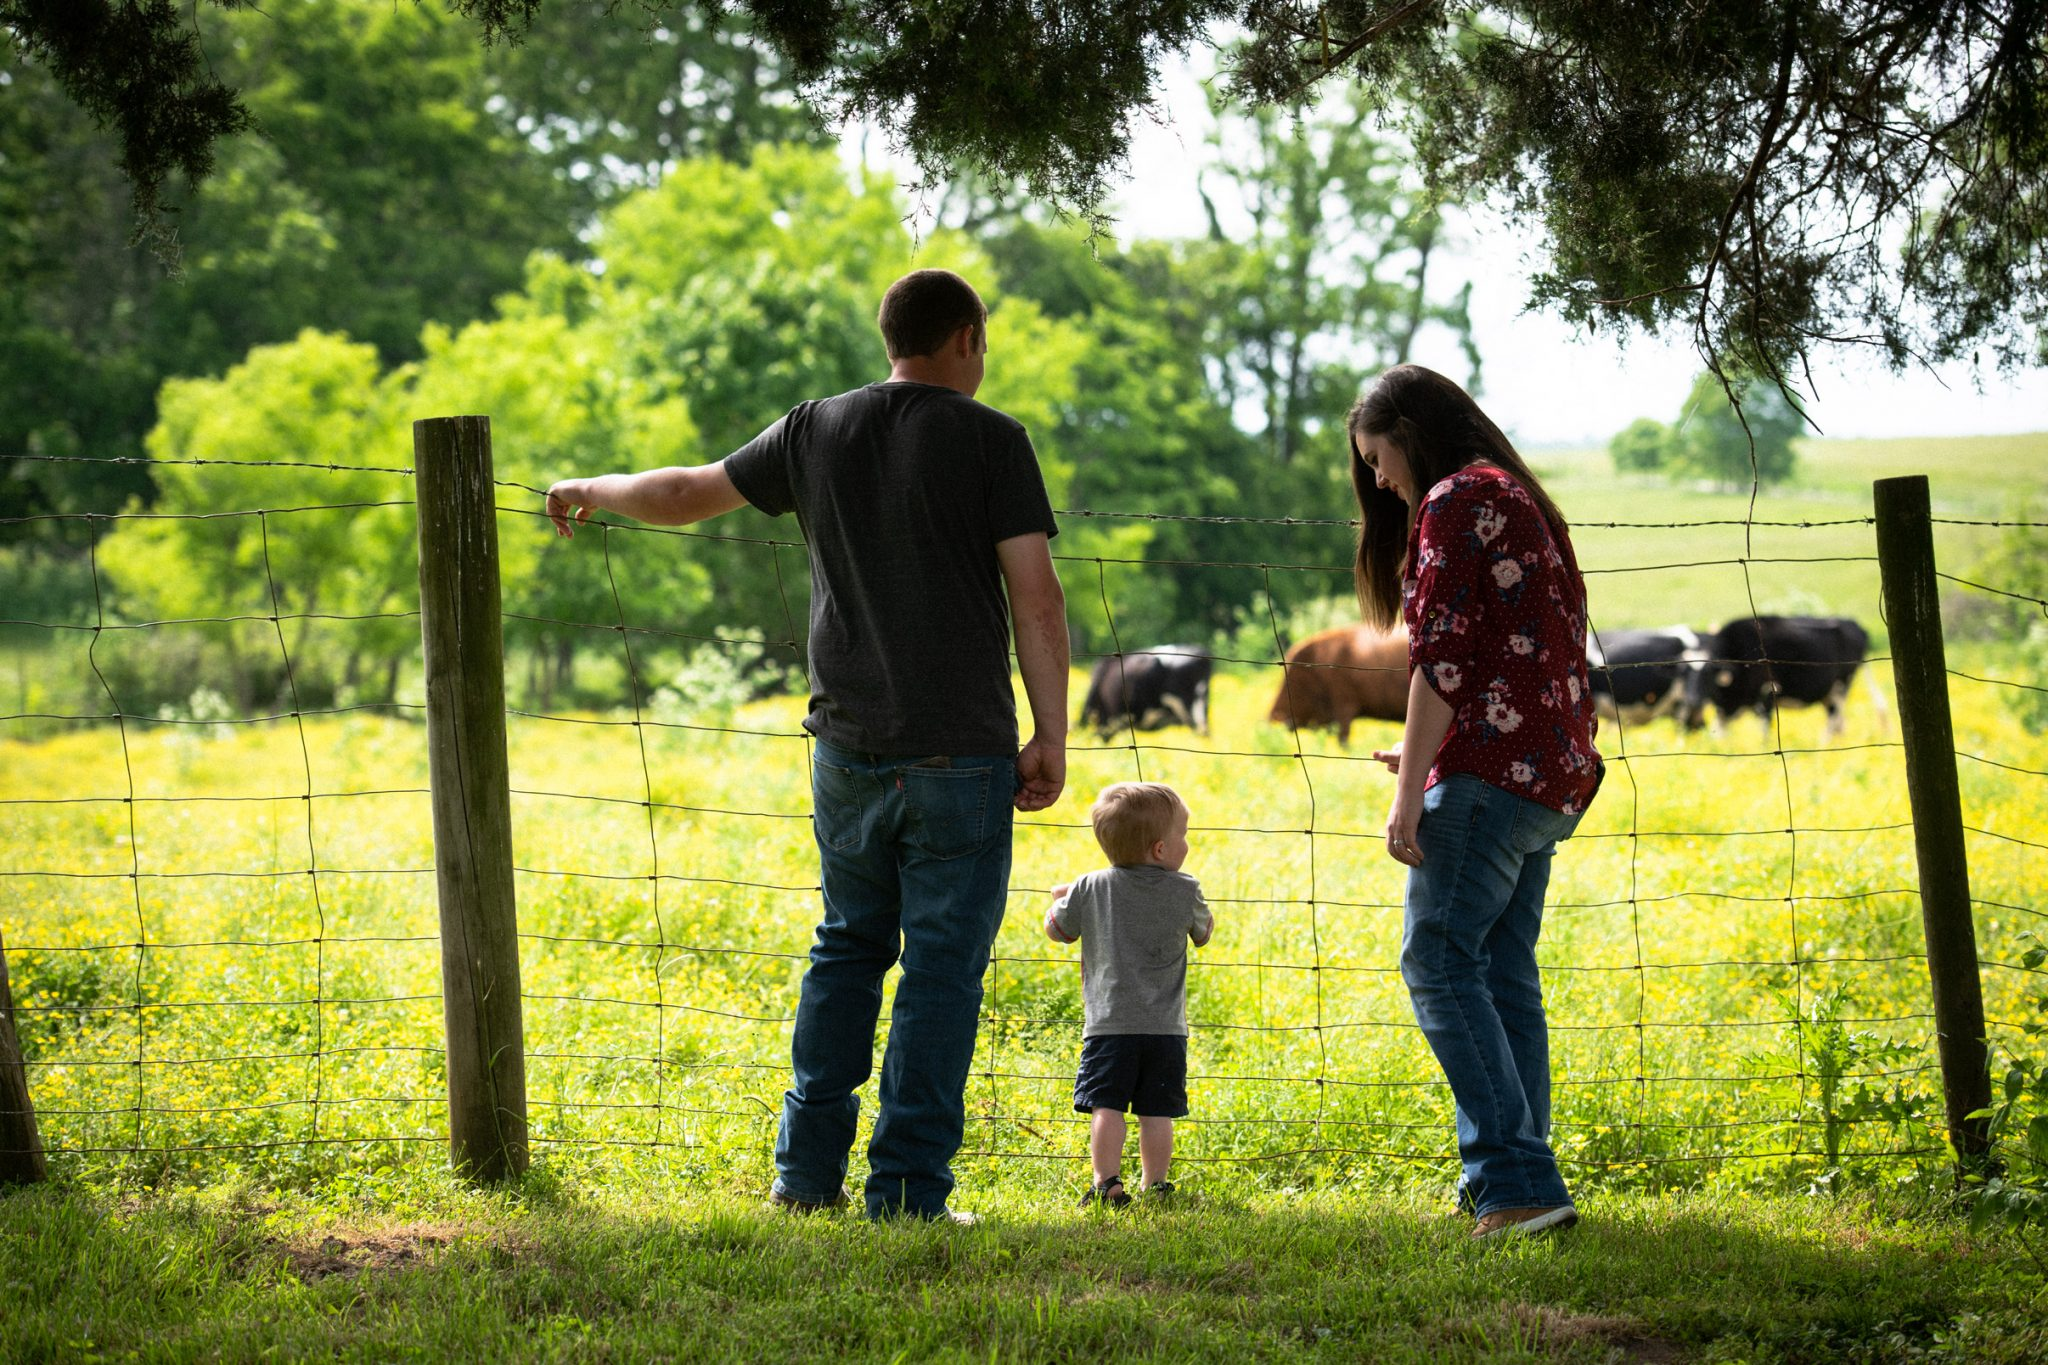 Caleb and Amelia show their son Cason some cows grazing in a pasture on their farm.